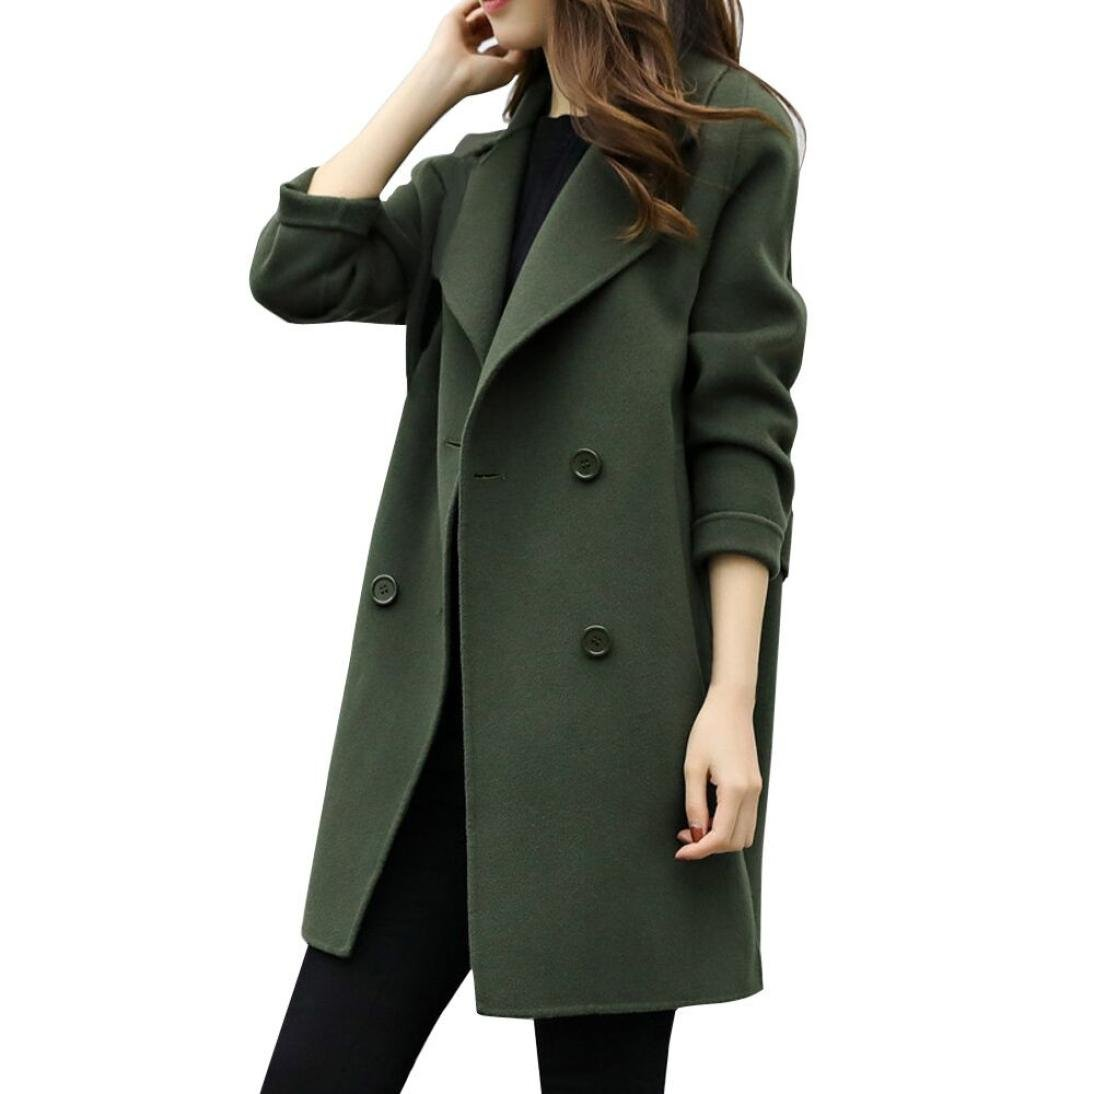 Pea Coat, Zulmaliu Lapel Open Front Double Breasted Button Women Trench Coat Cardigan Overcoat